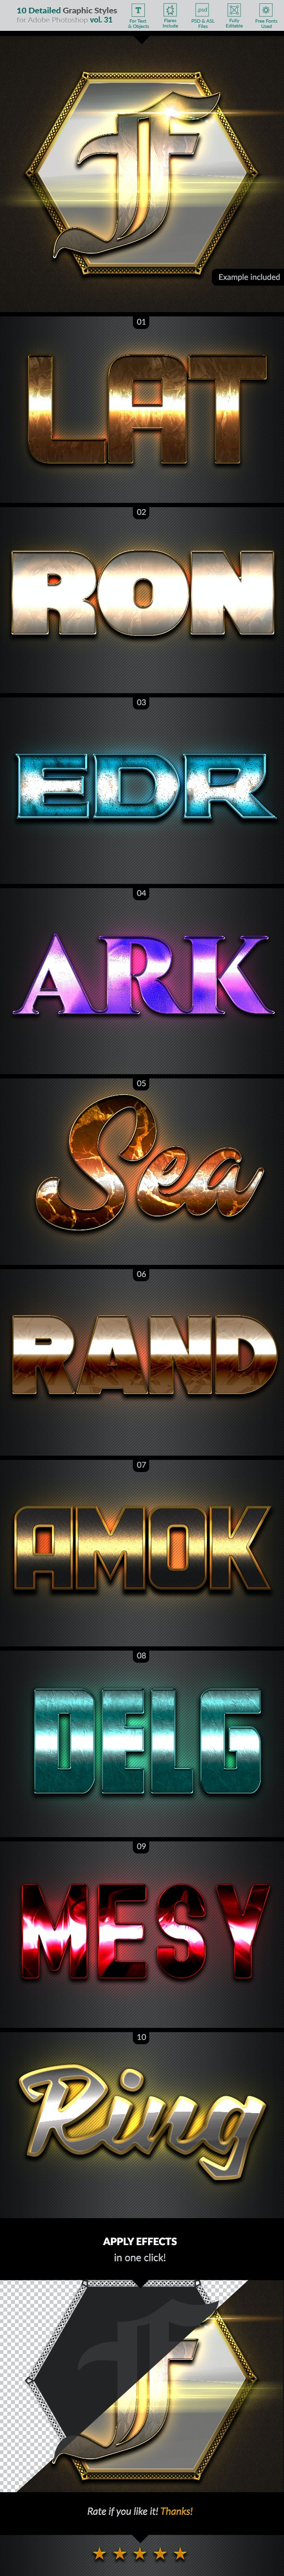 10 Text Effects Vol. 31 - Styles Photoshop